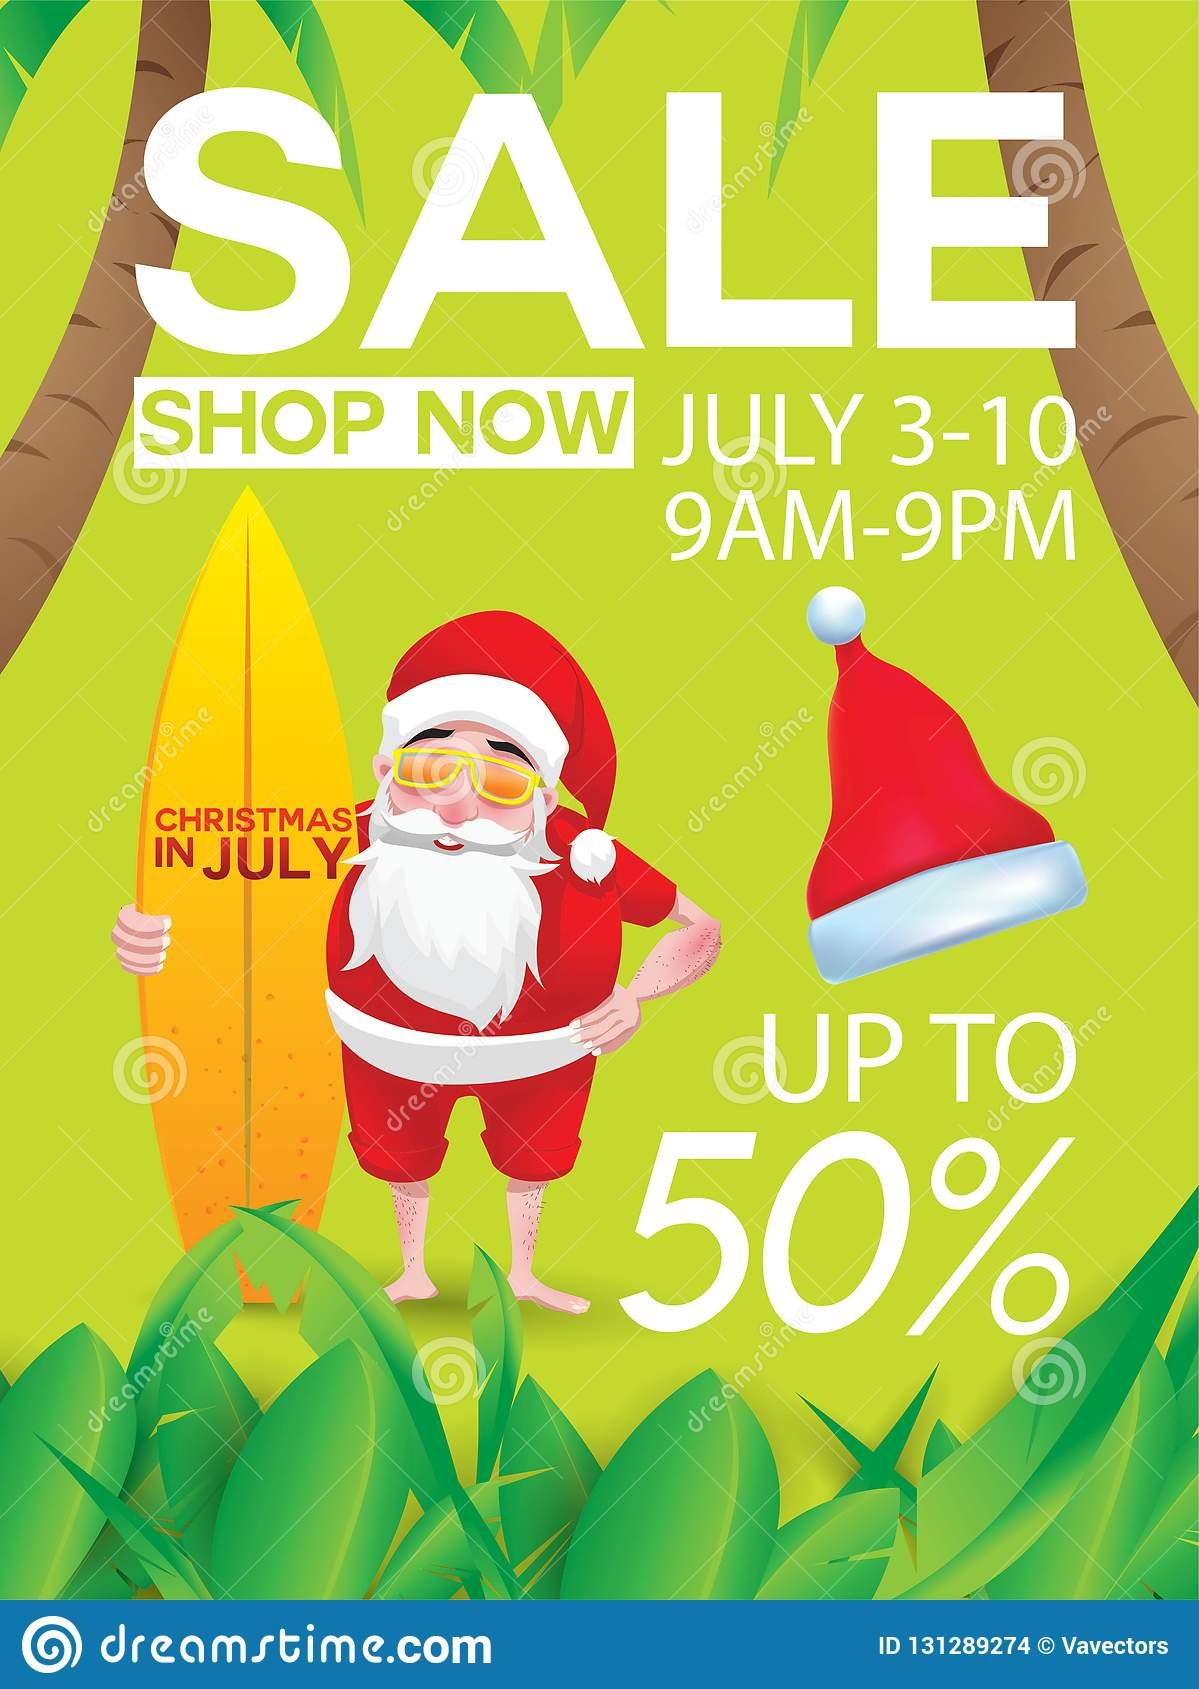 Christmas In August Poster.Christmas In July Design With 3d Concept Stock Vector